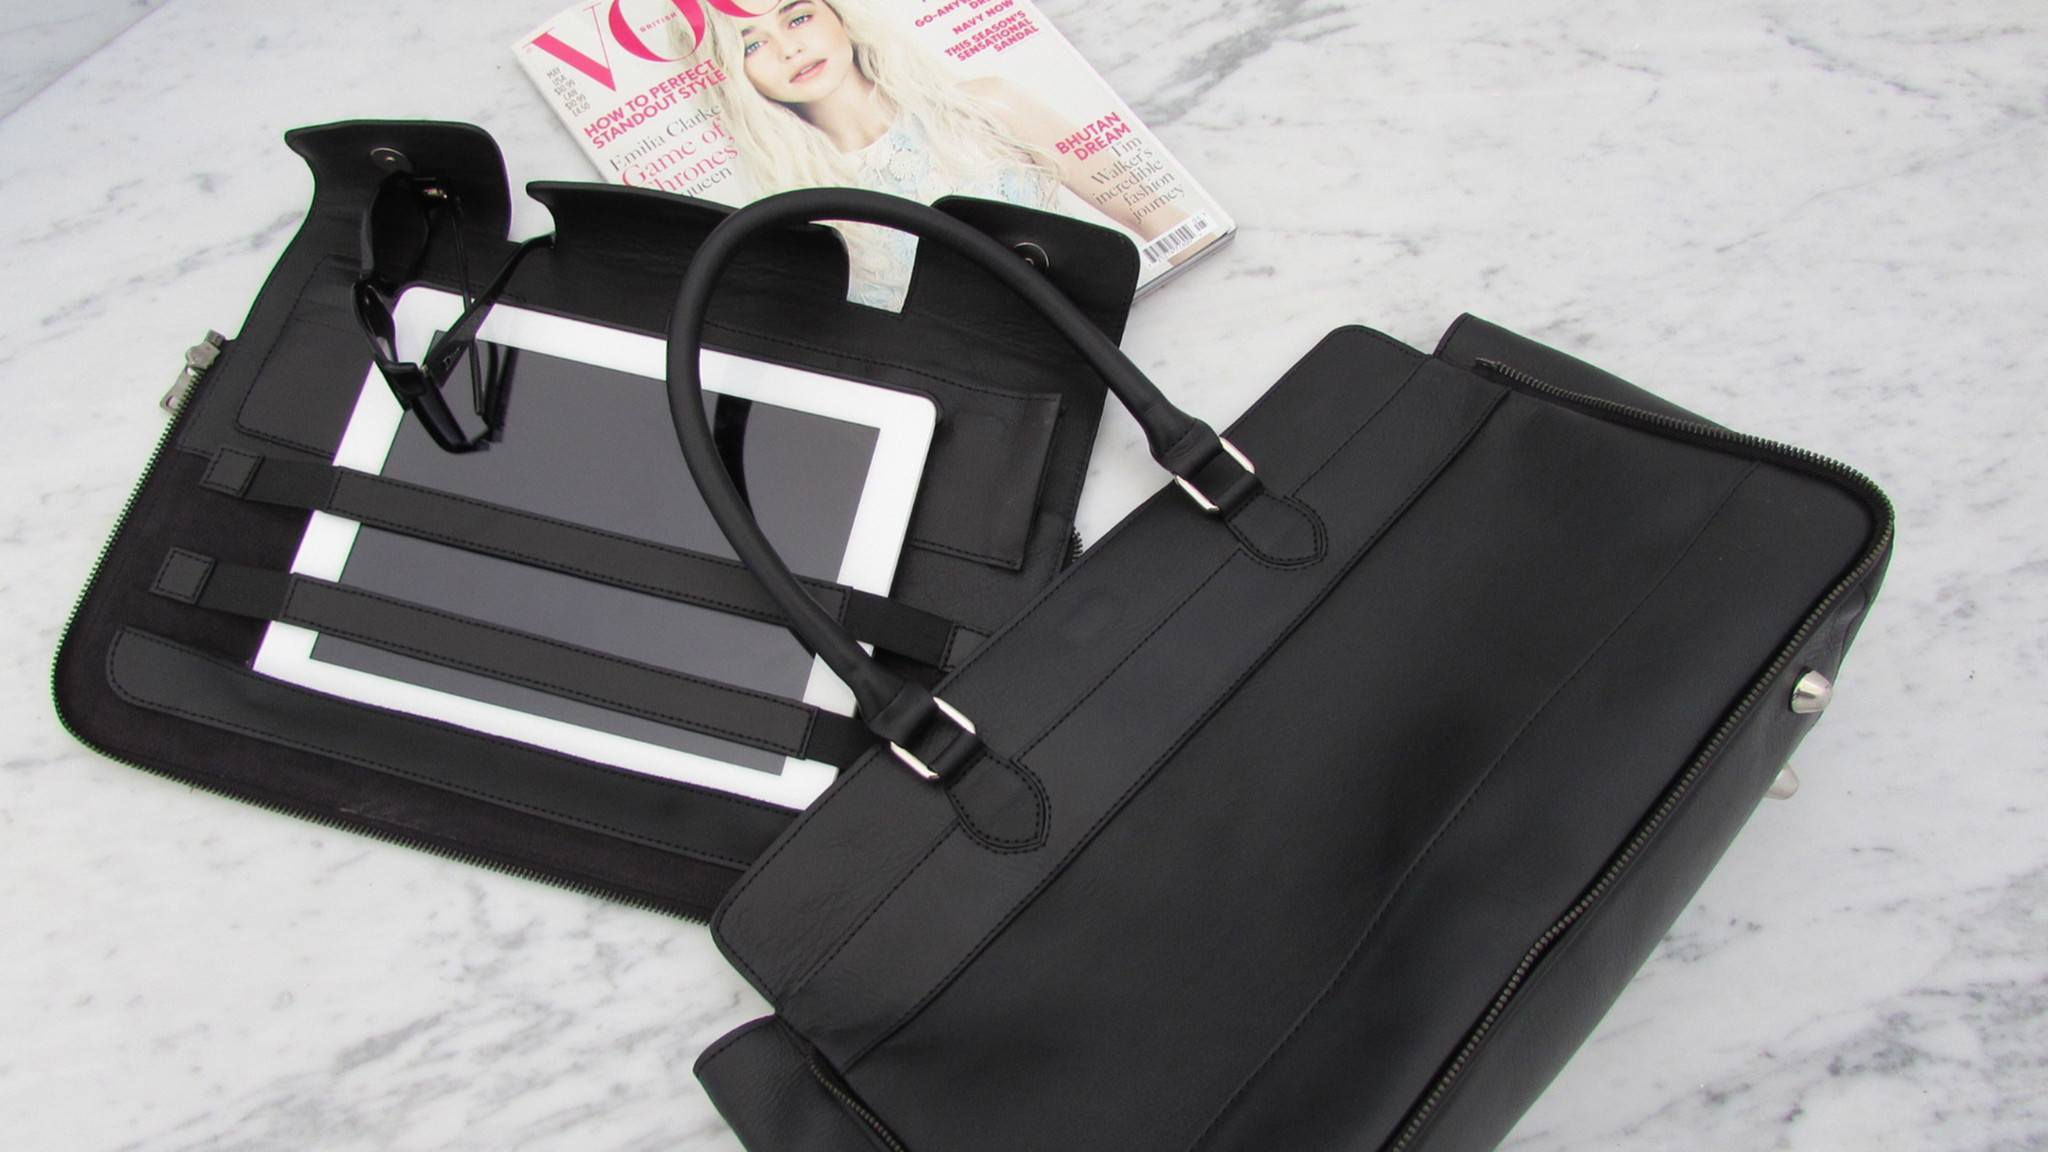 The Back Mistery Totebag in Black with its portfolio detached from it - Decor